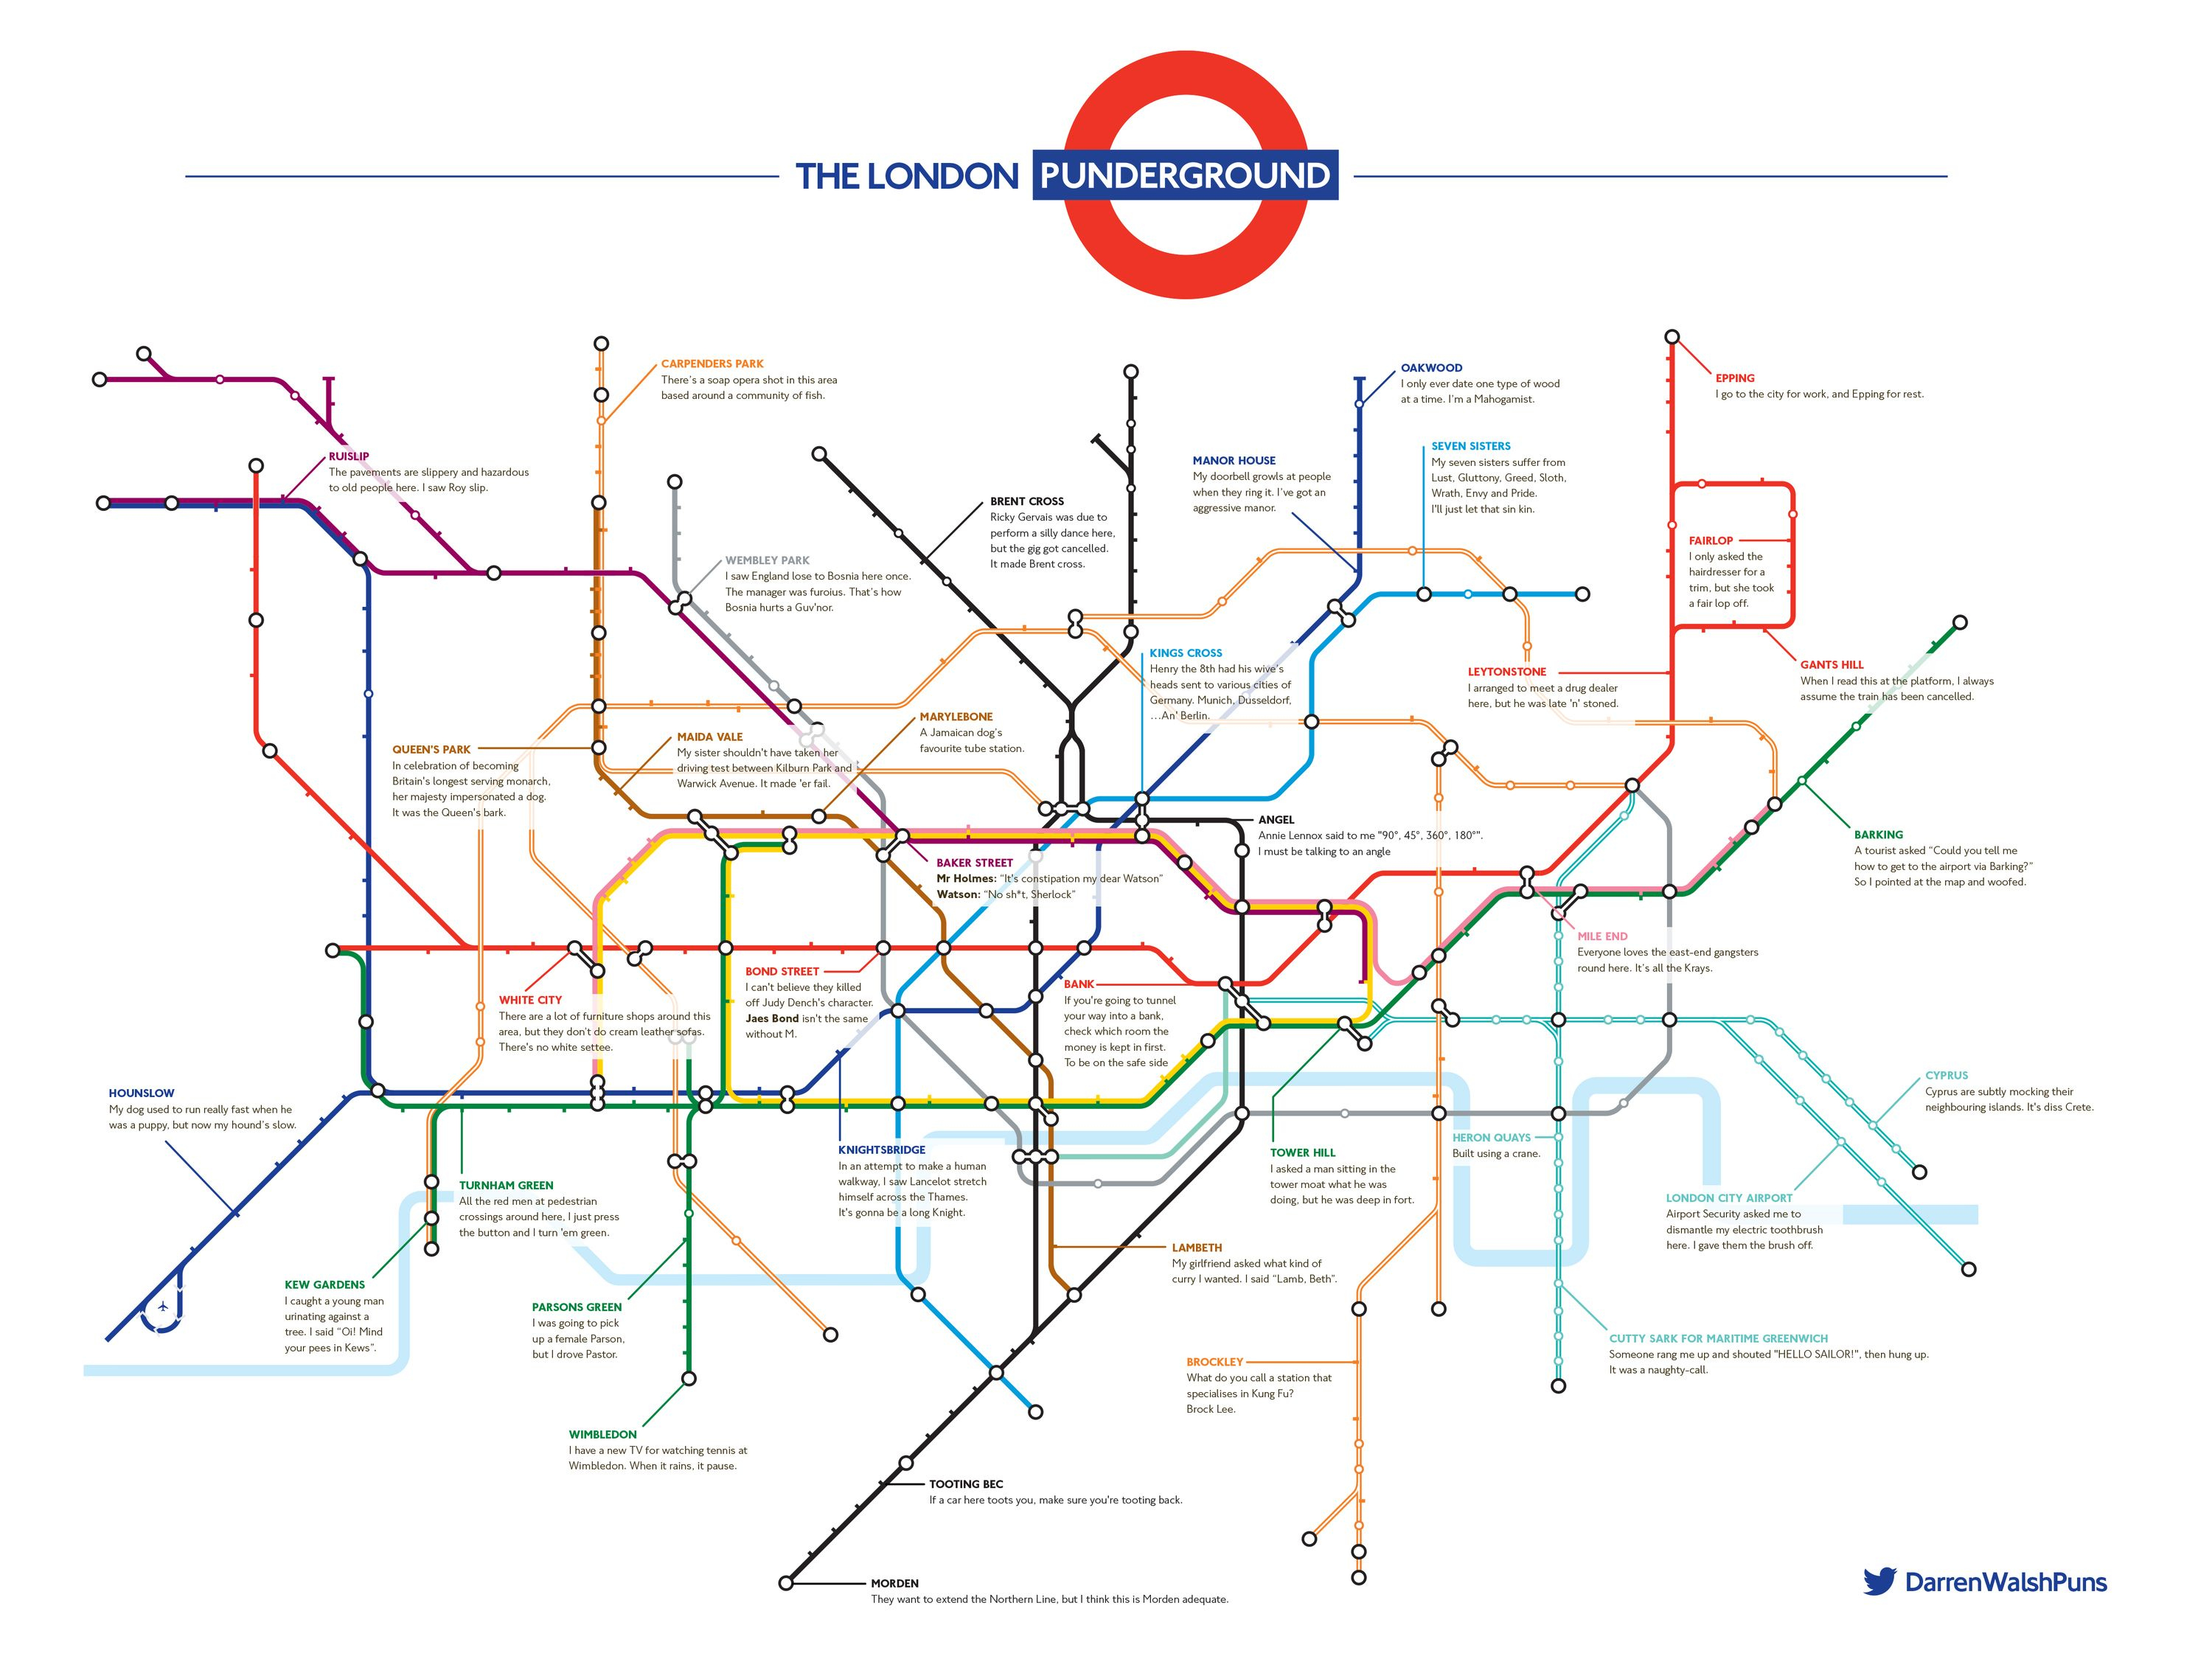 the pun funny london underground tube map